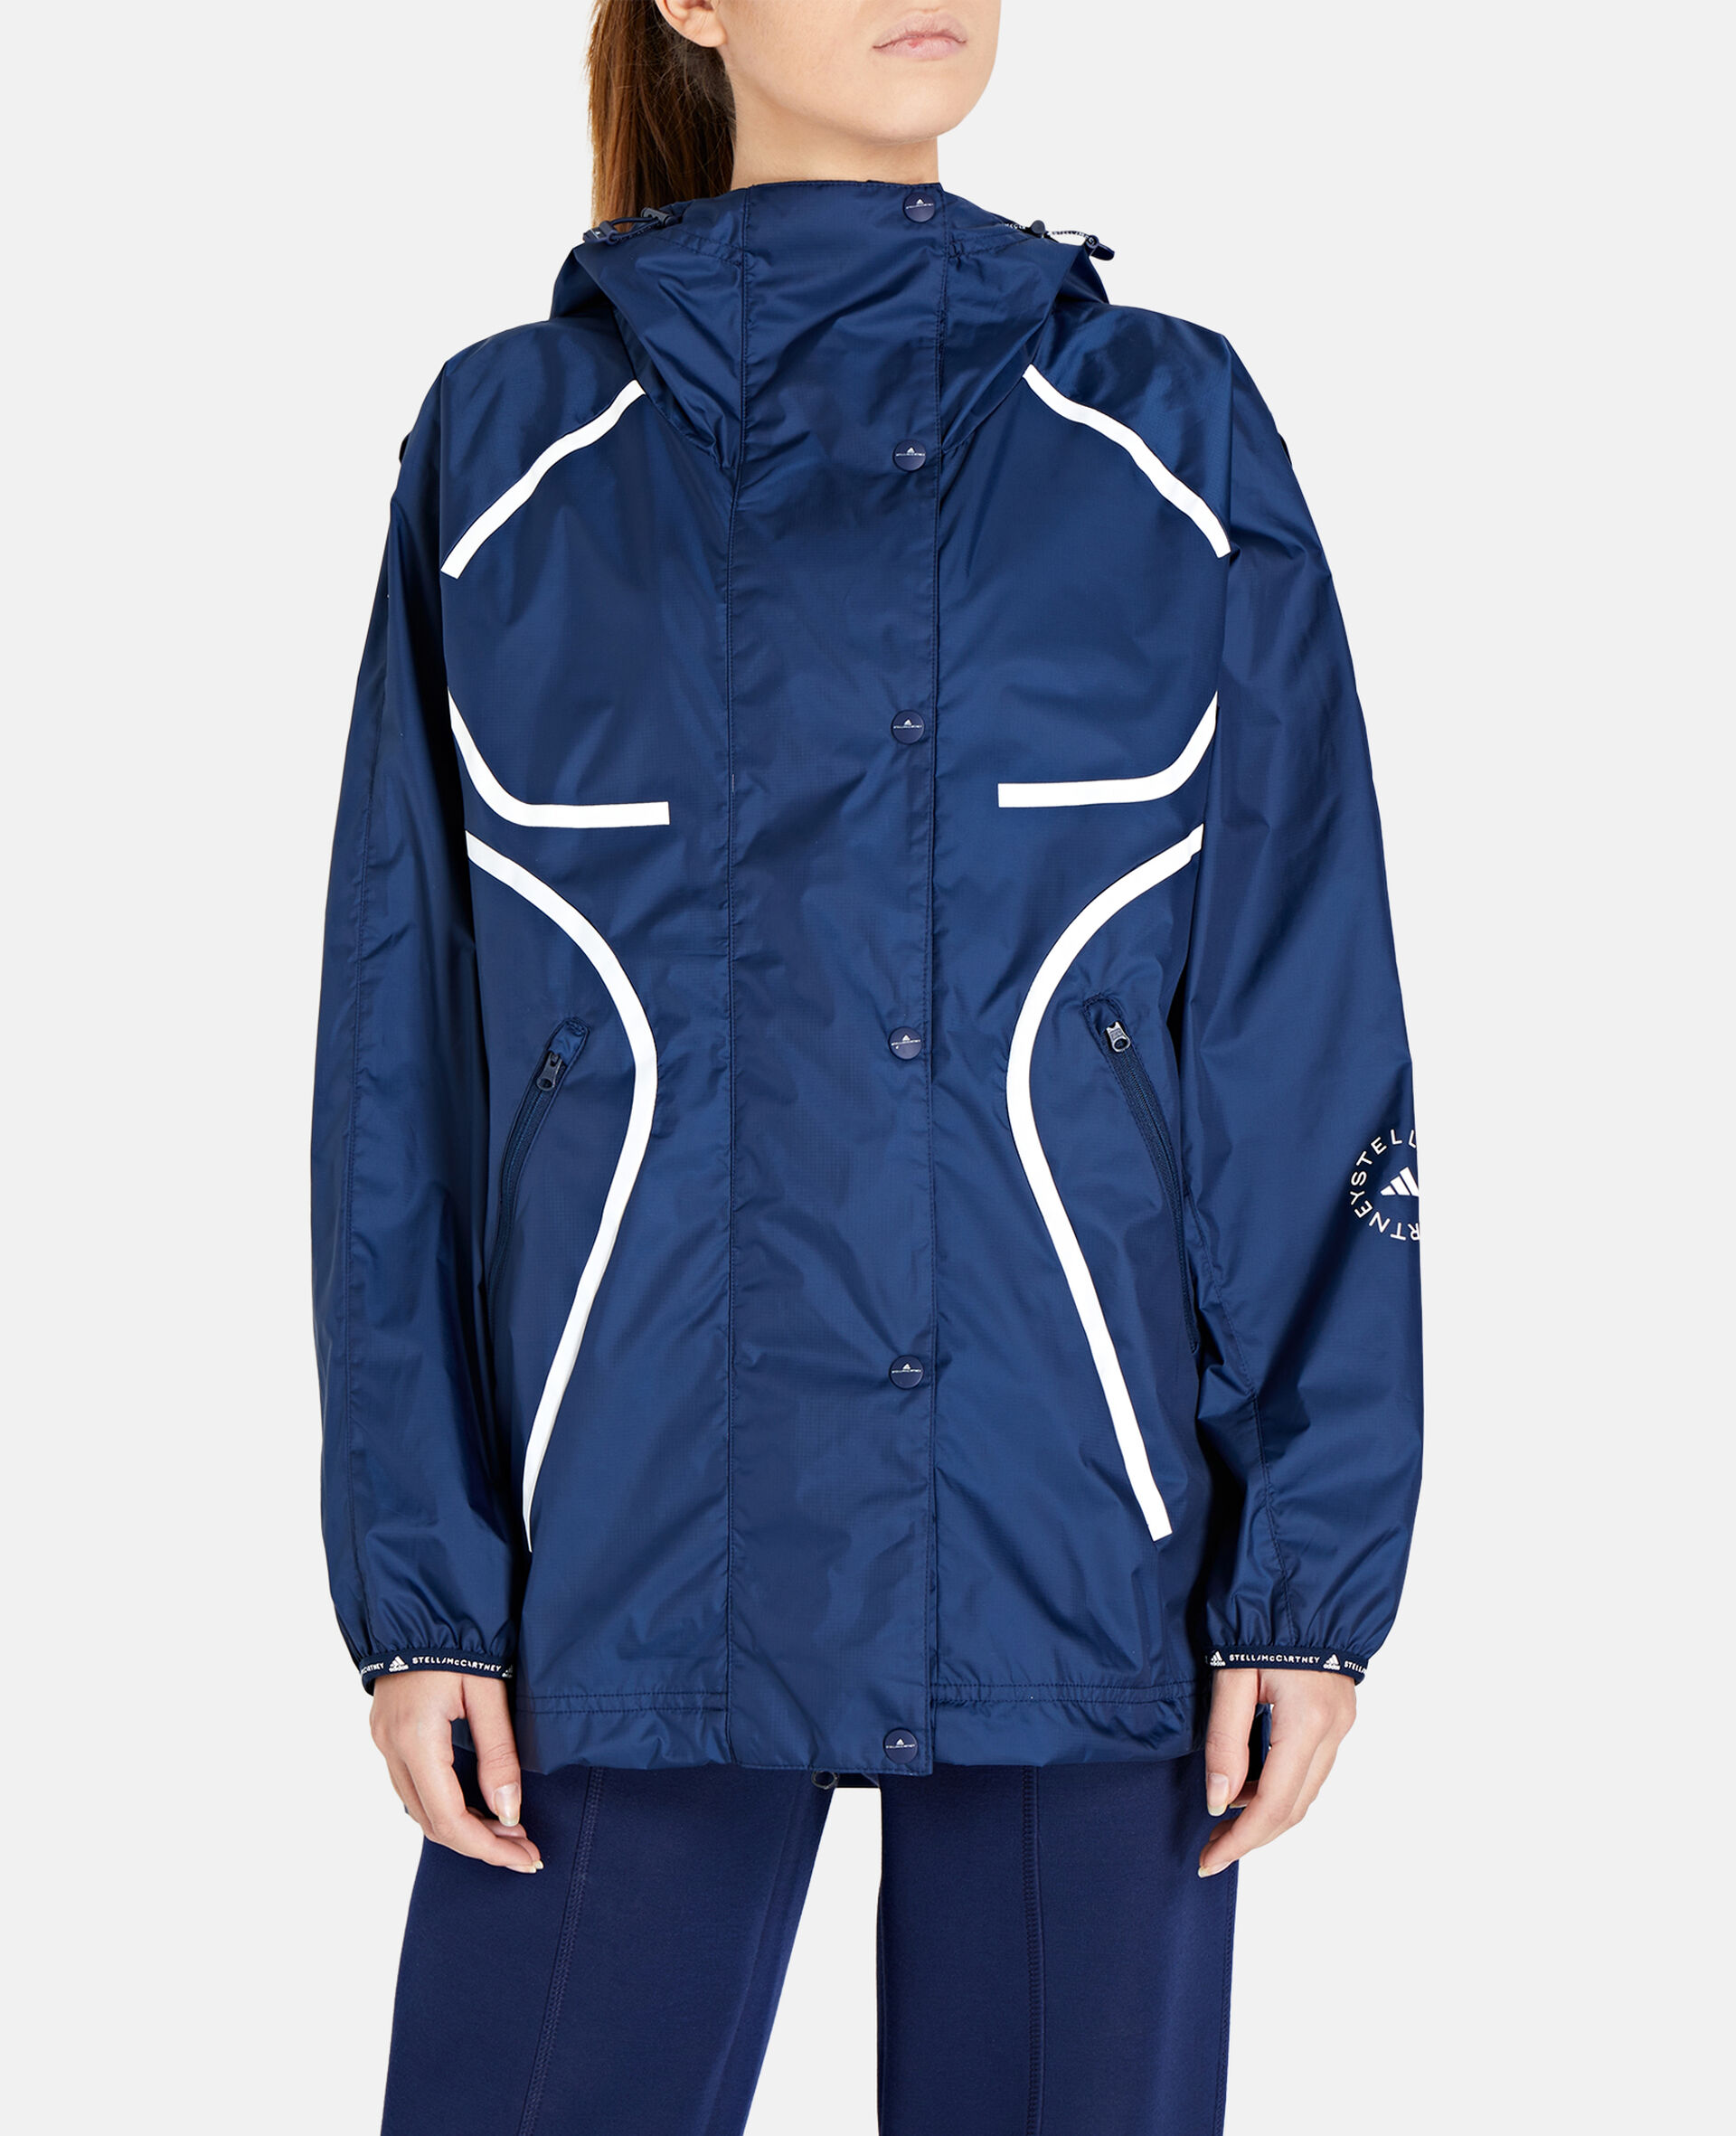 TruePace Wind.rdy Jacket-Blue-large image number 4